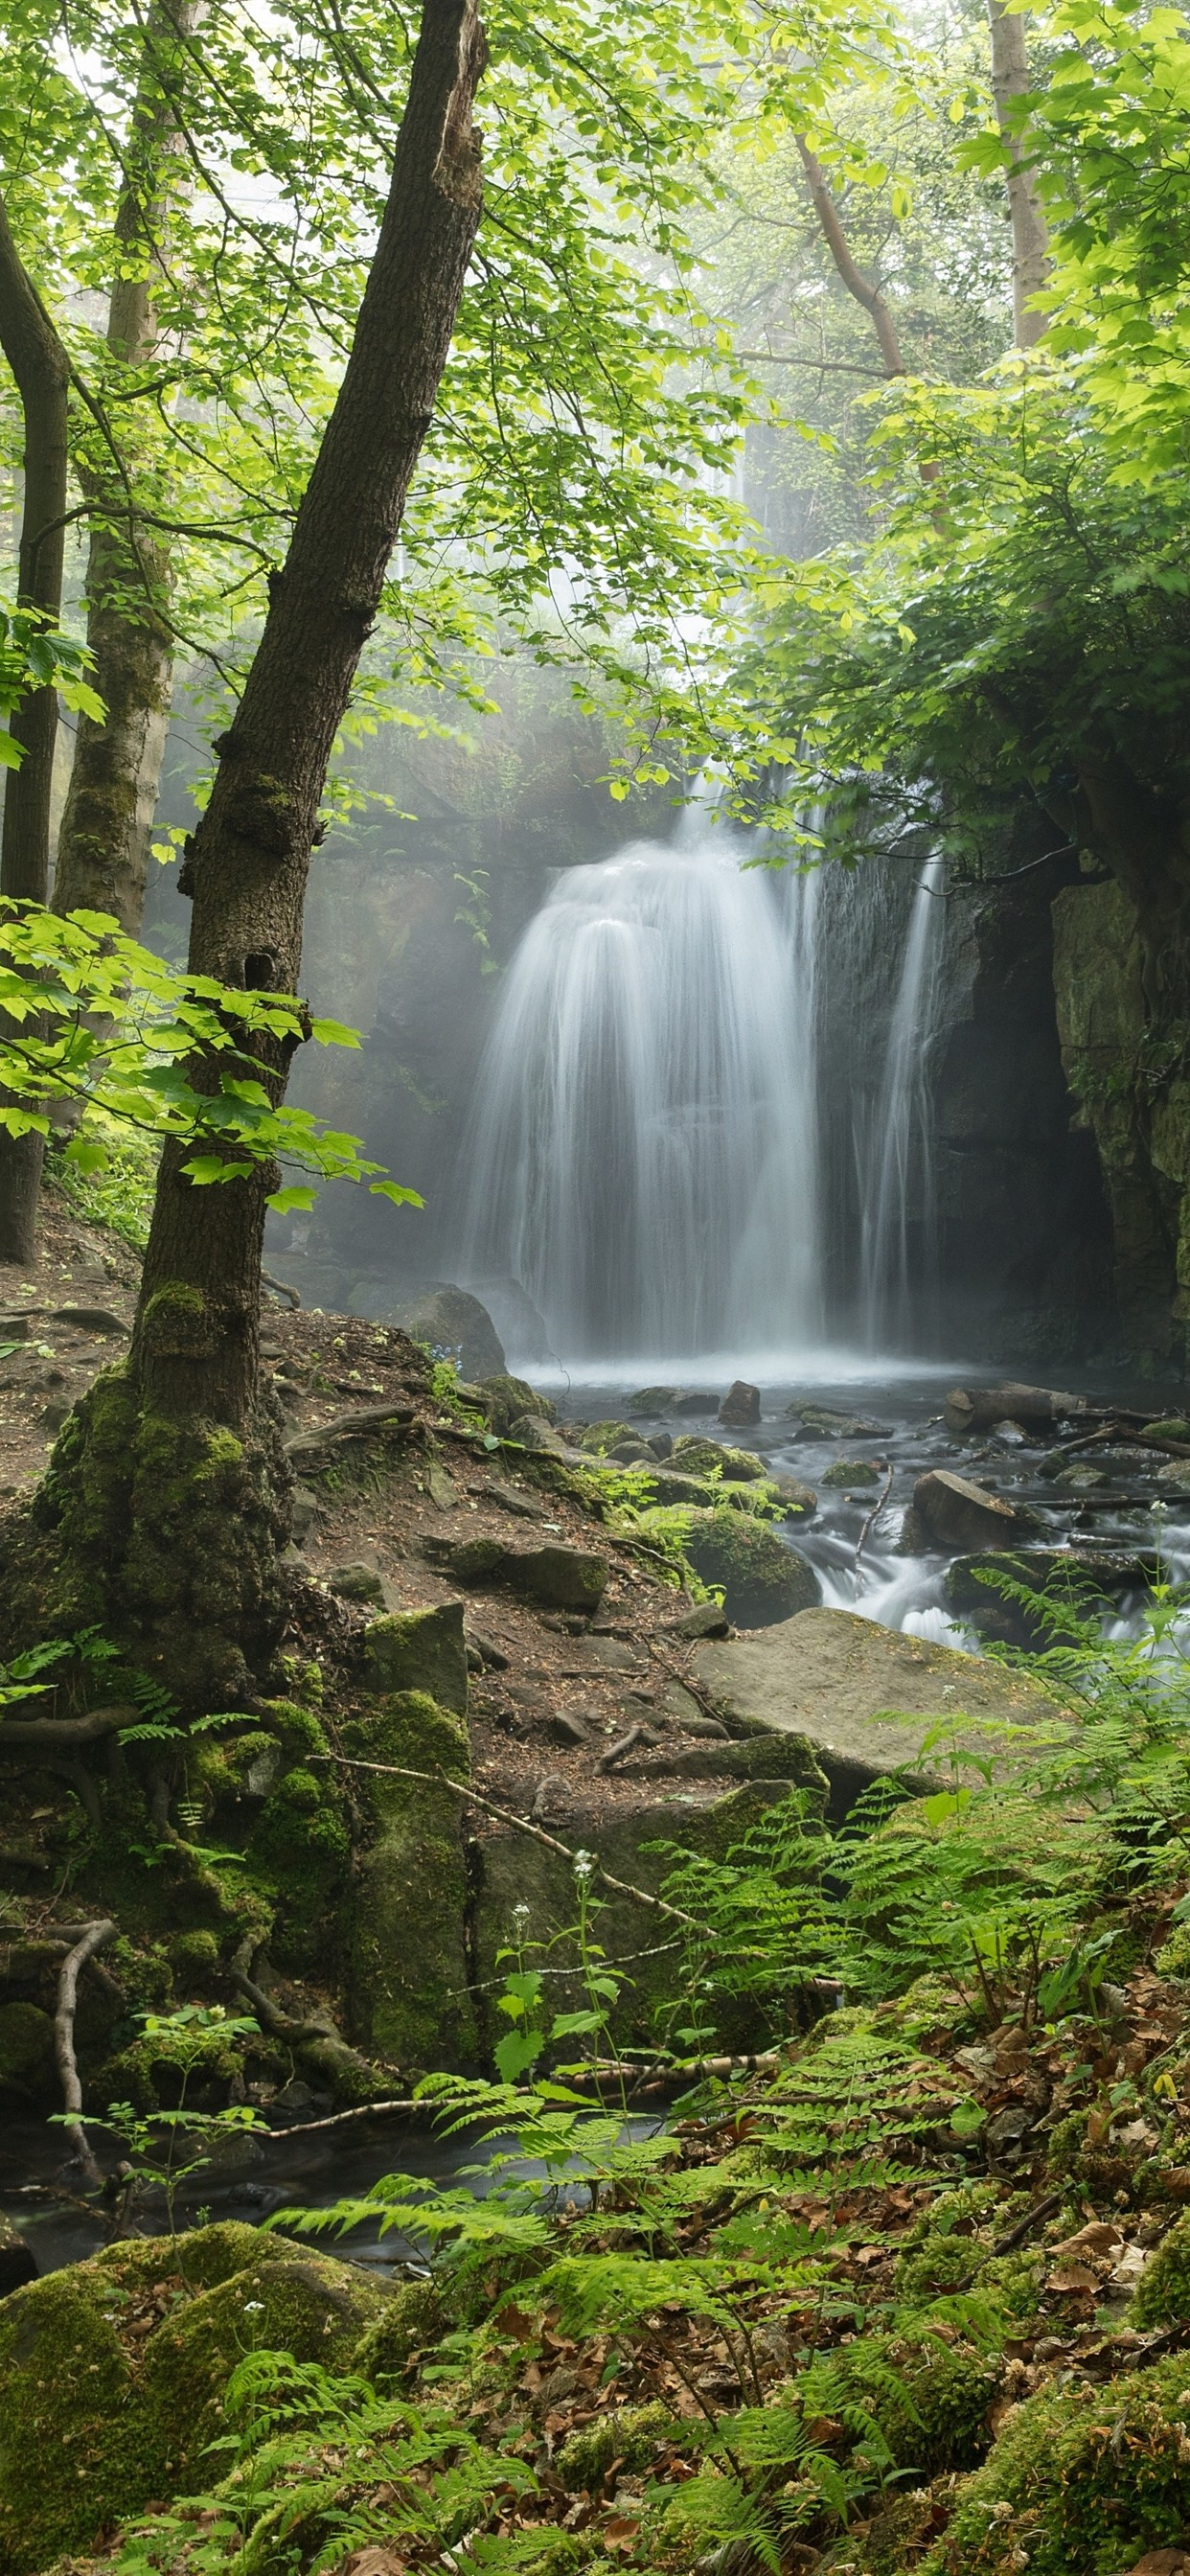 Hd Wallpapers Butterflies Widescreen Wallpaper England Derbyshire Peak District Waterfall